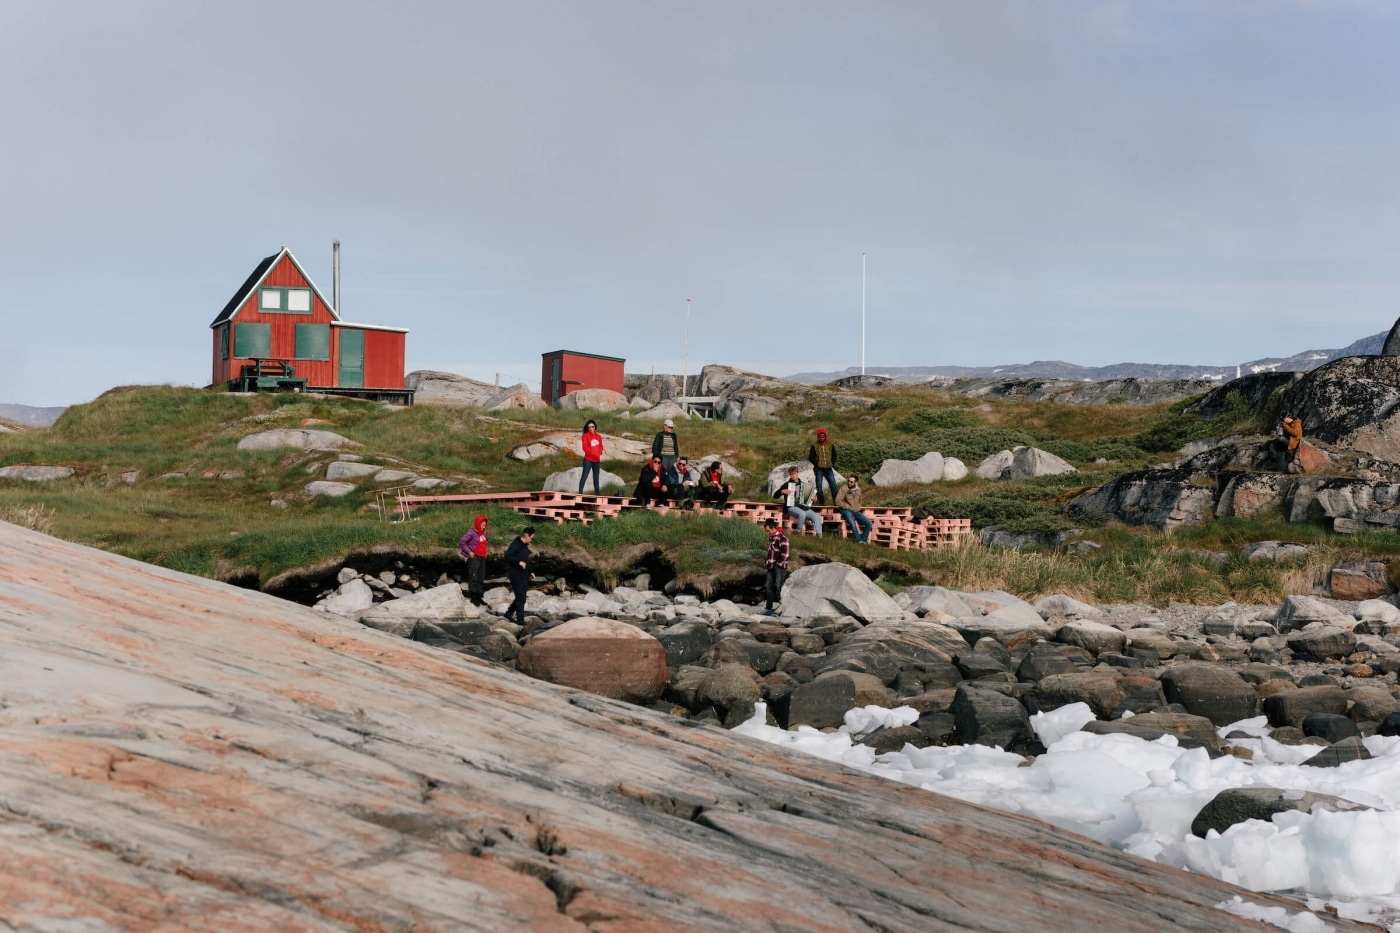 Artists jam on stage ahead of the festival. Photo by Jessie Brinkman Evans - Visit Greenland